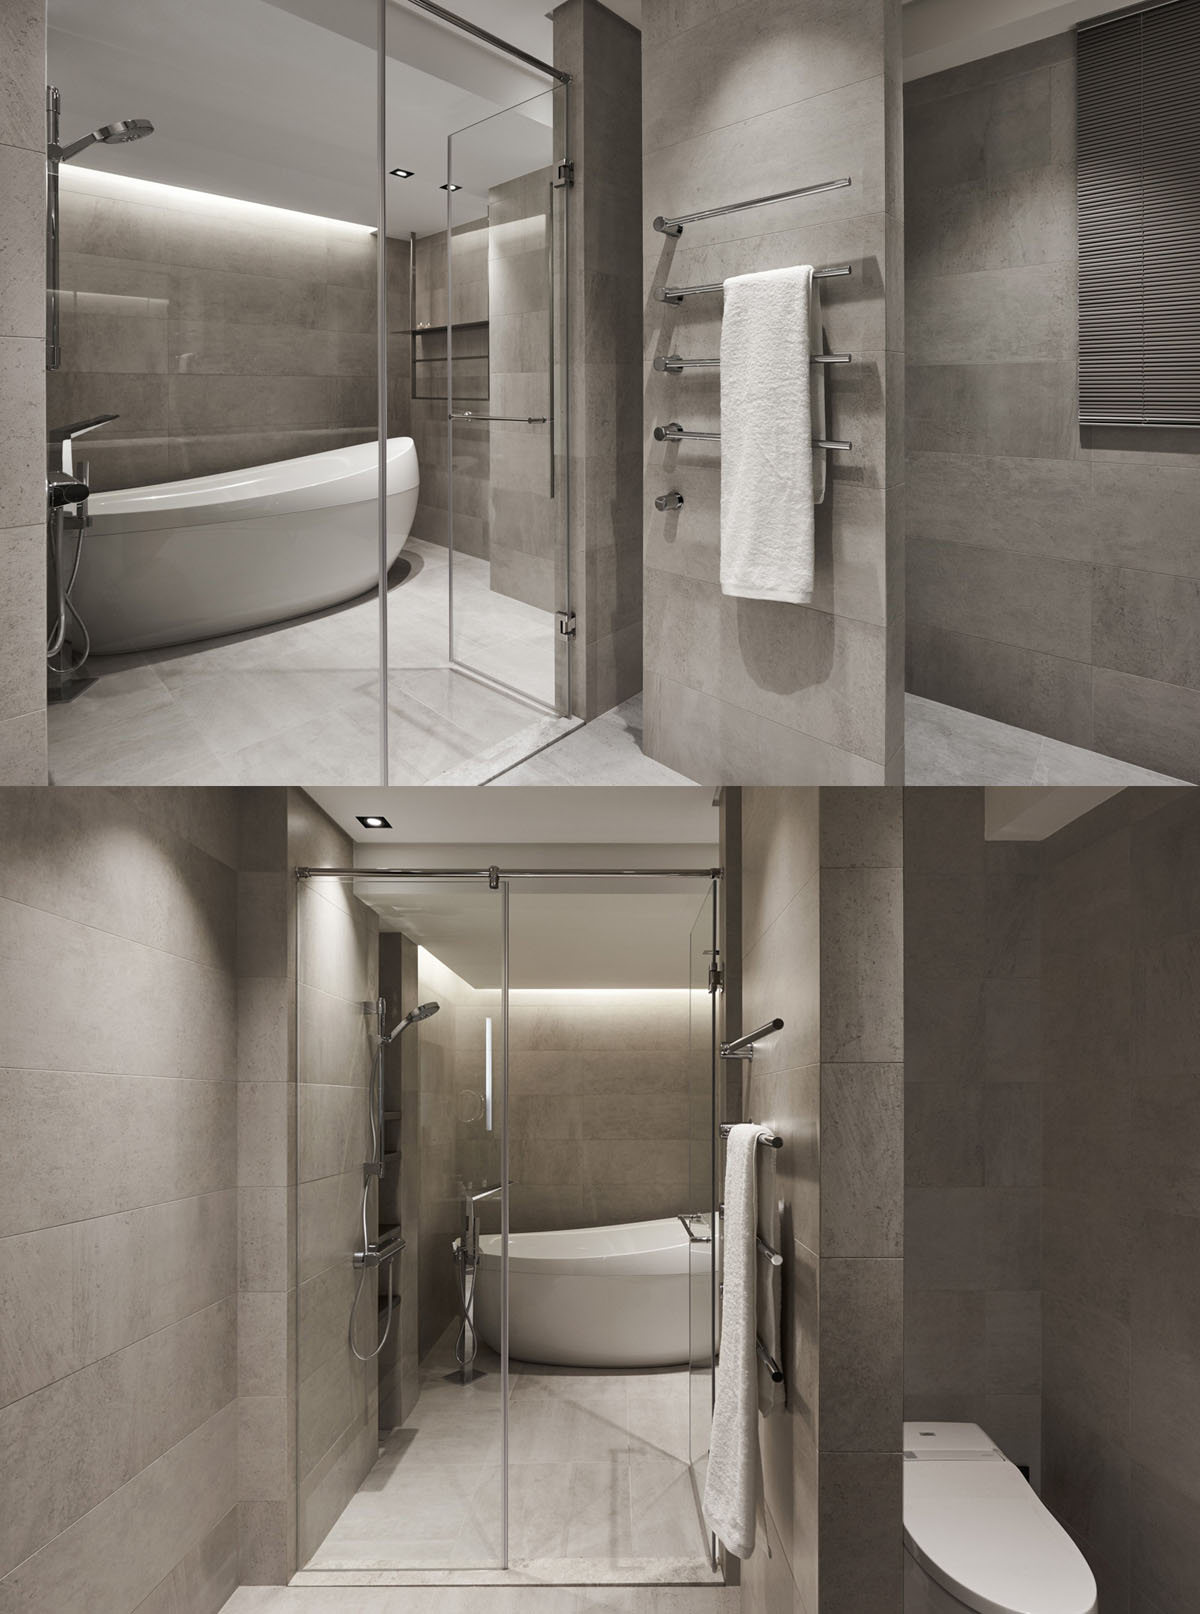 stone-walls-and-floors-grey-bathroom